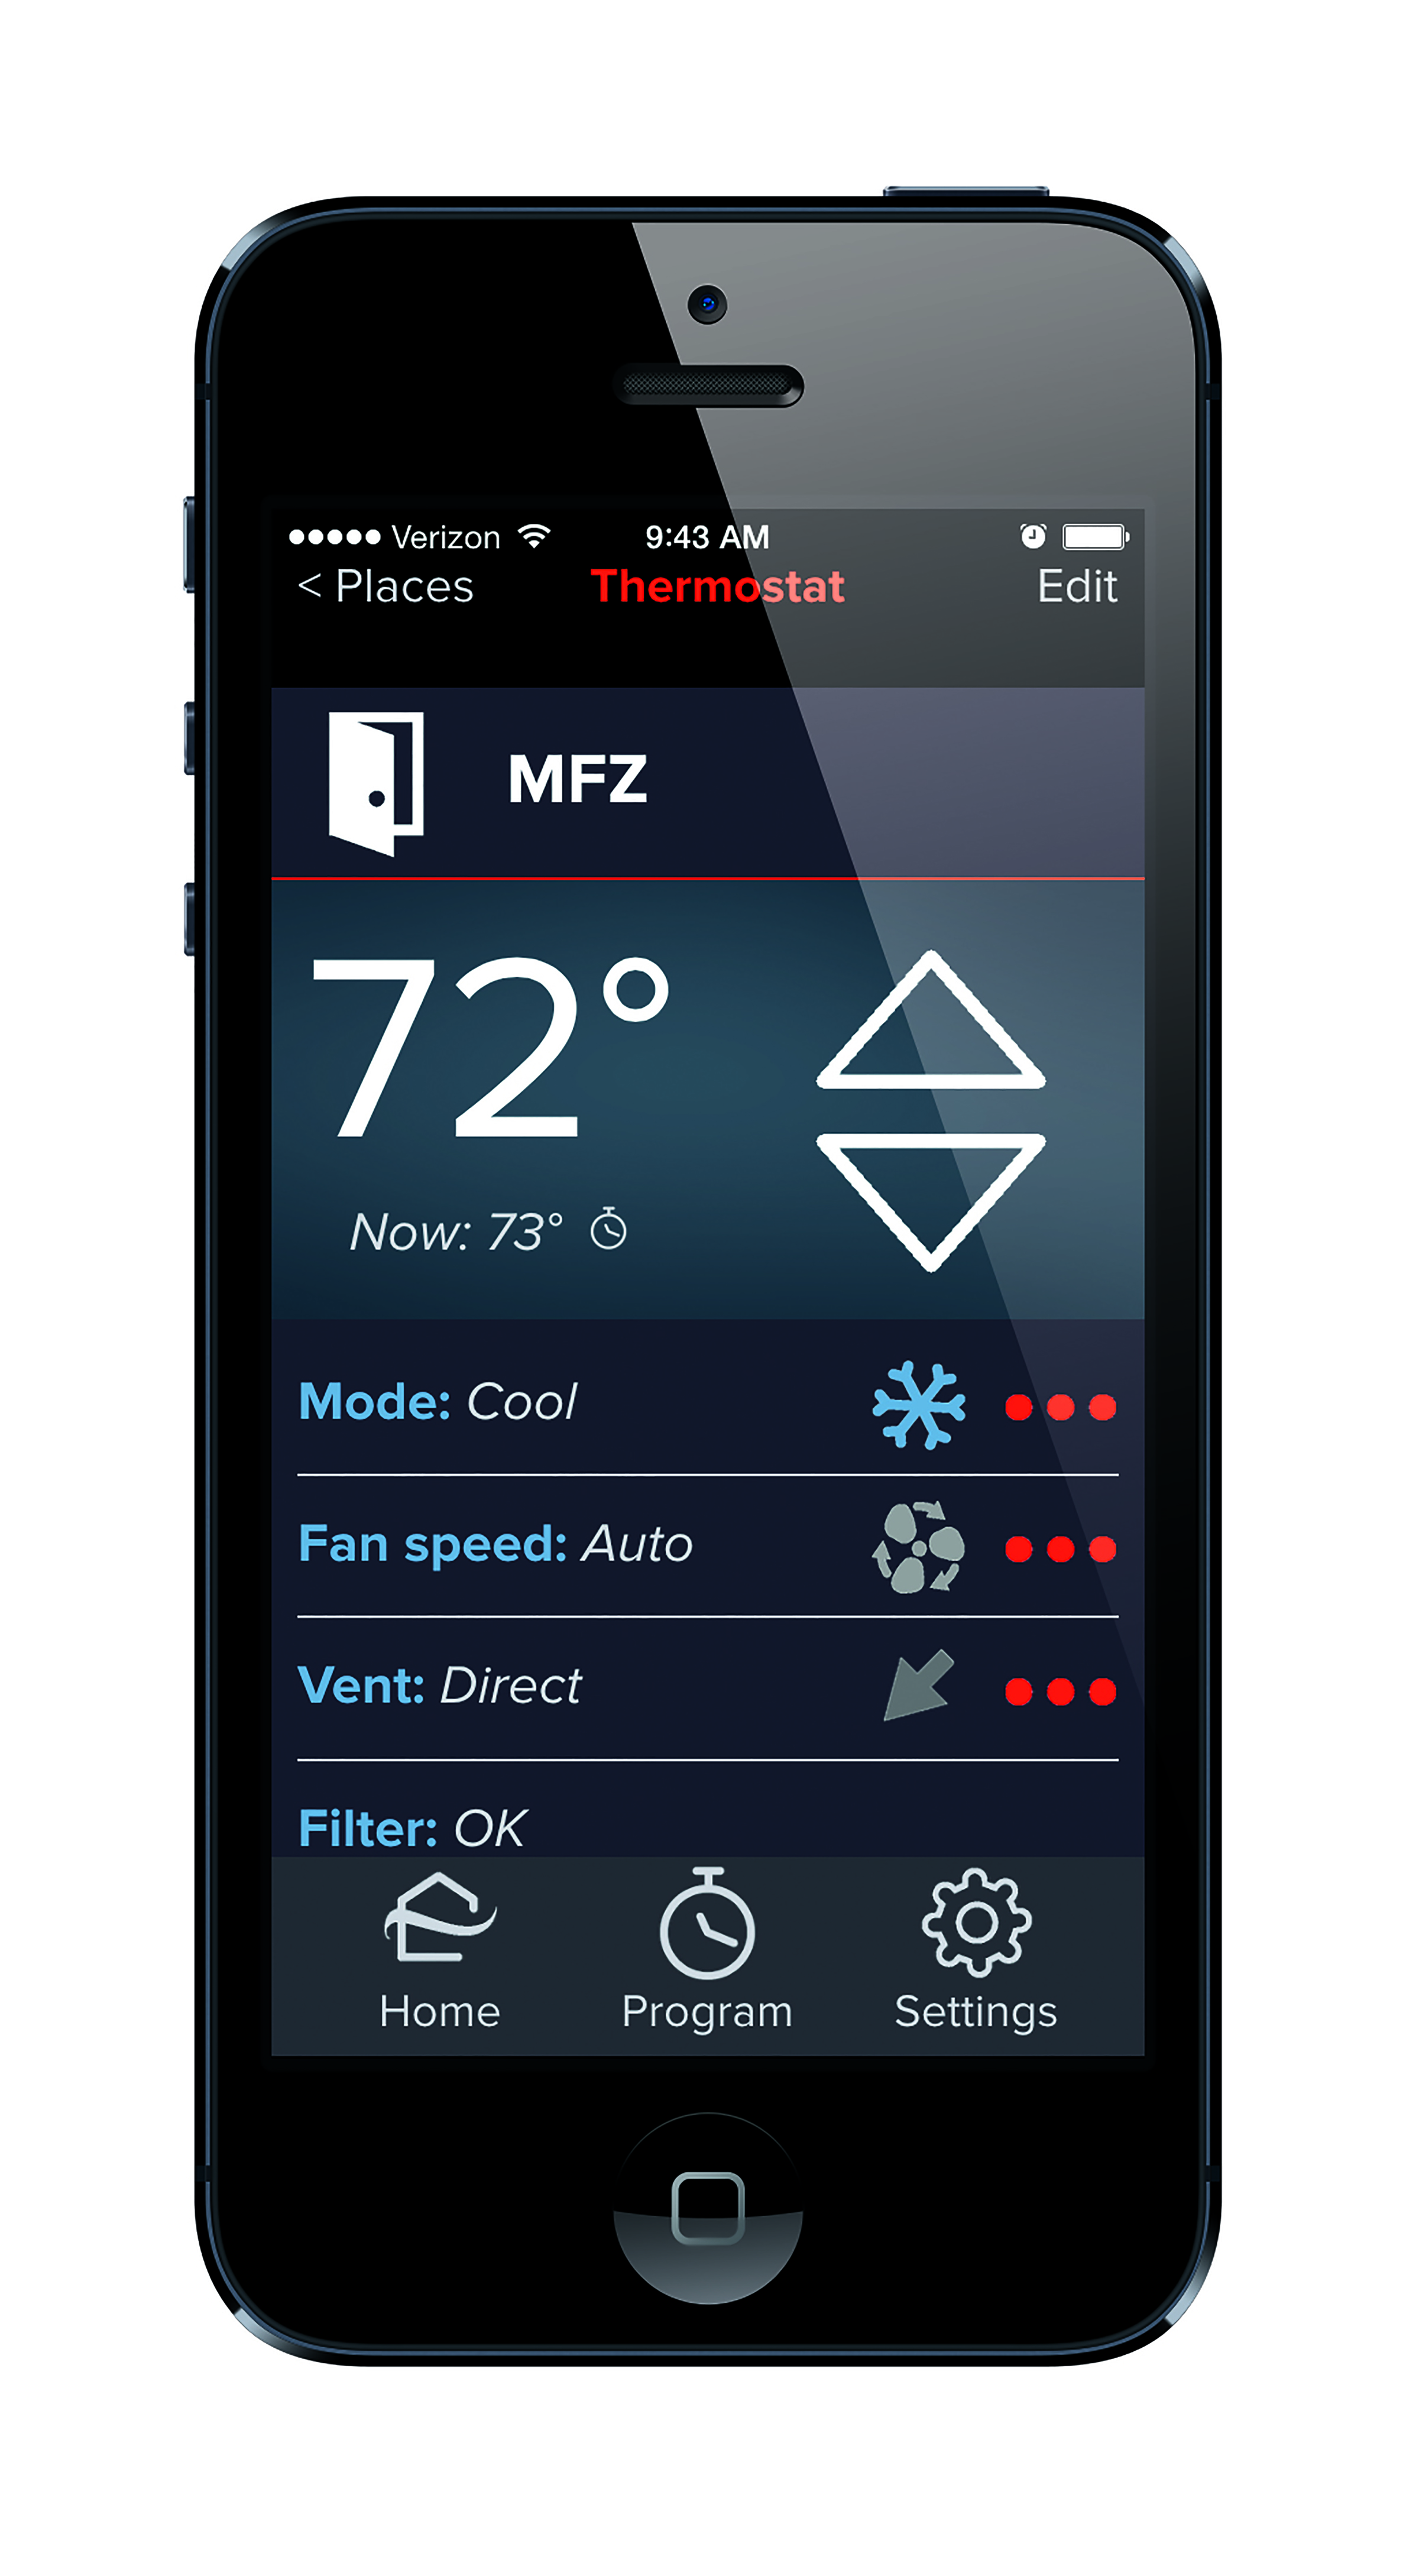 app interface pairing provides remote access to indoor